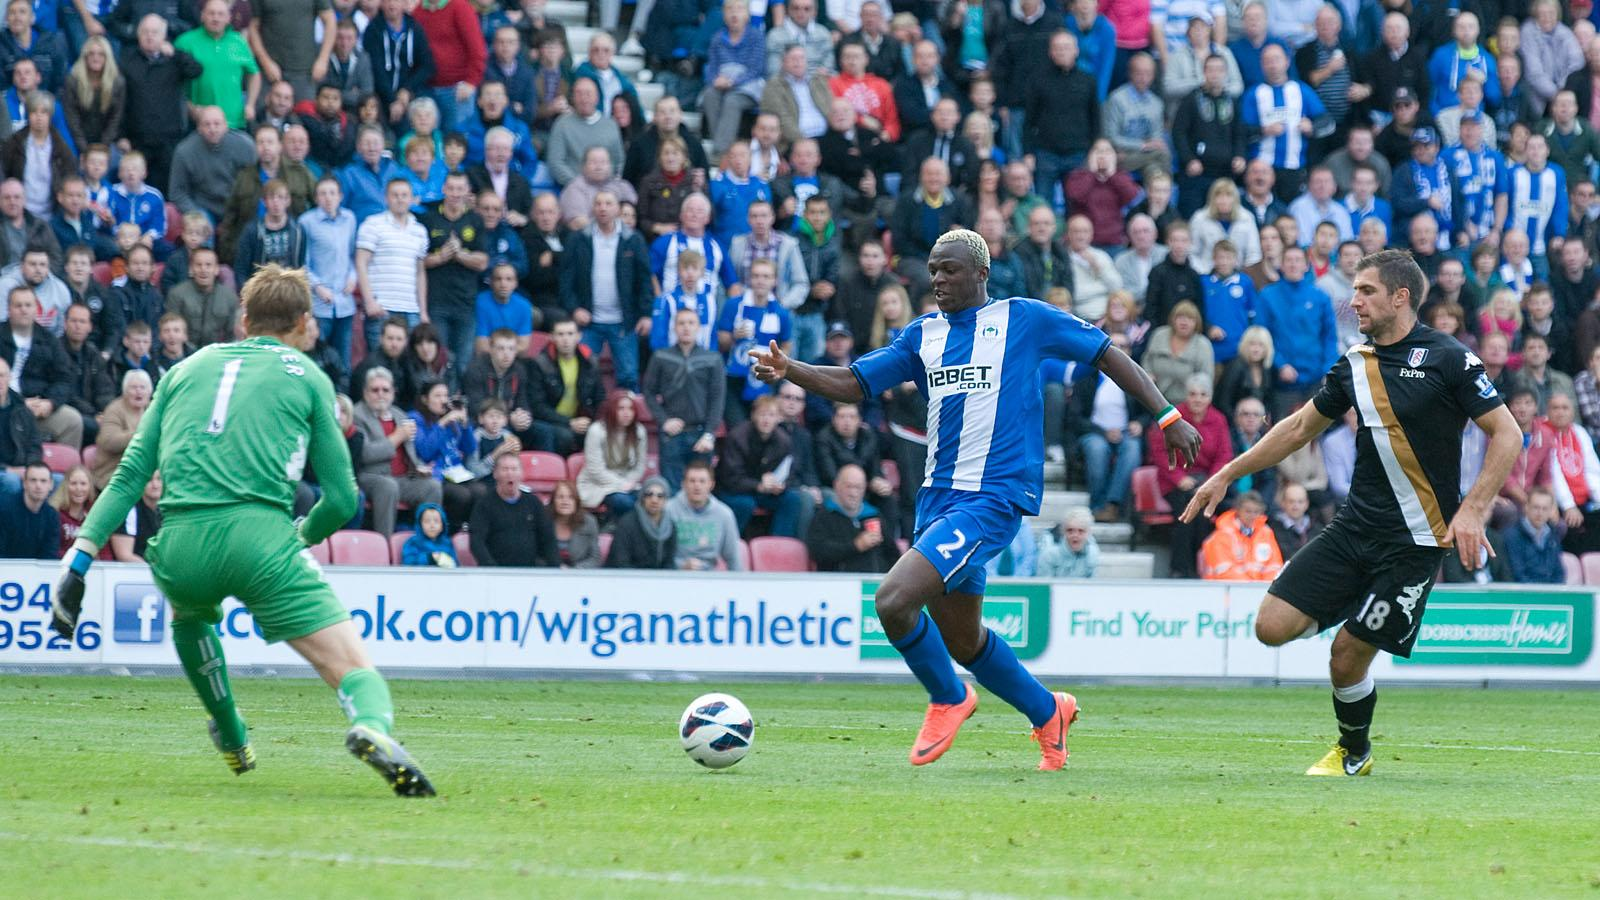 Chùm ảnh: Wigan Athletic (13)